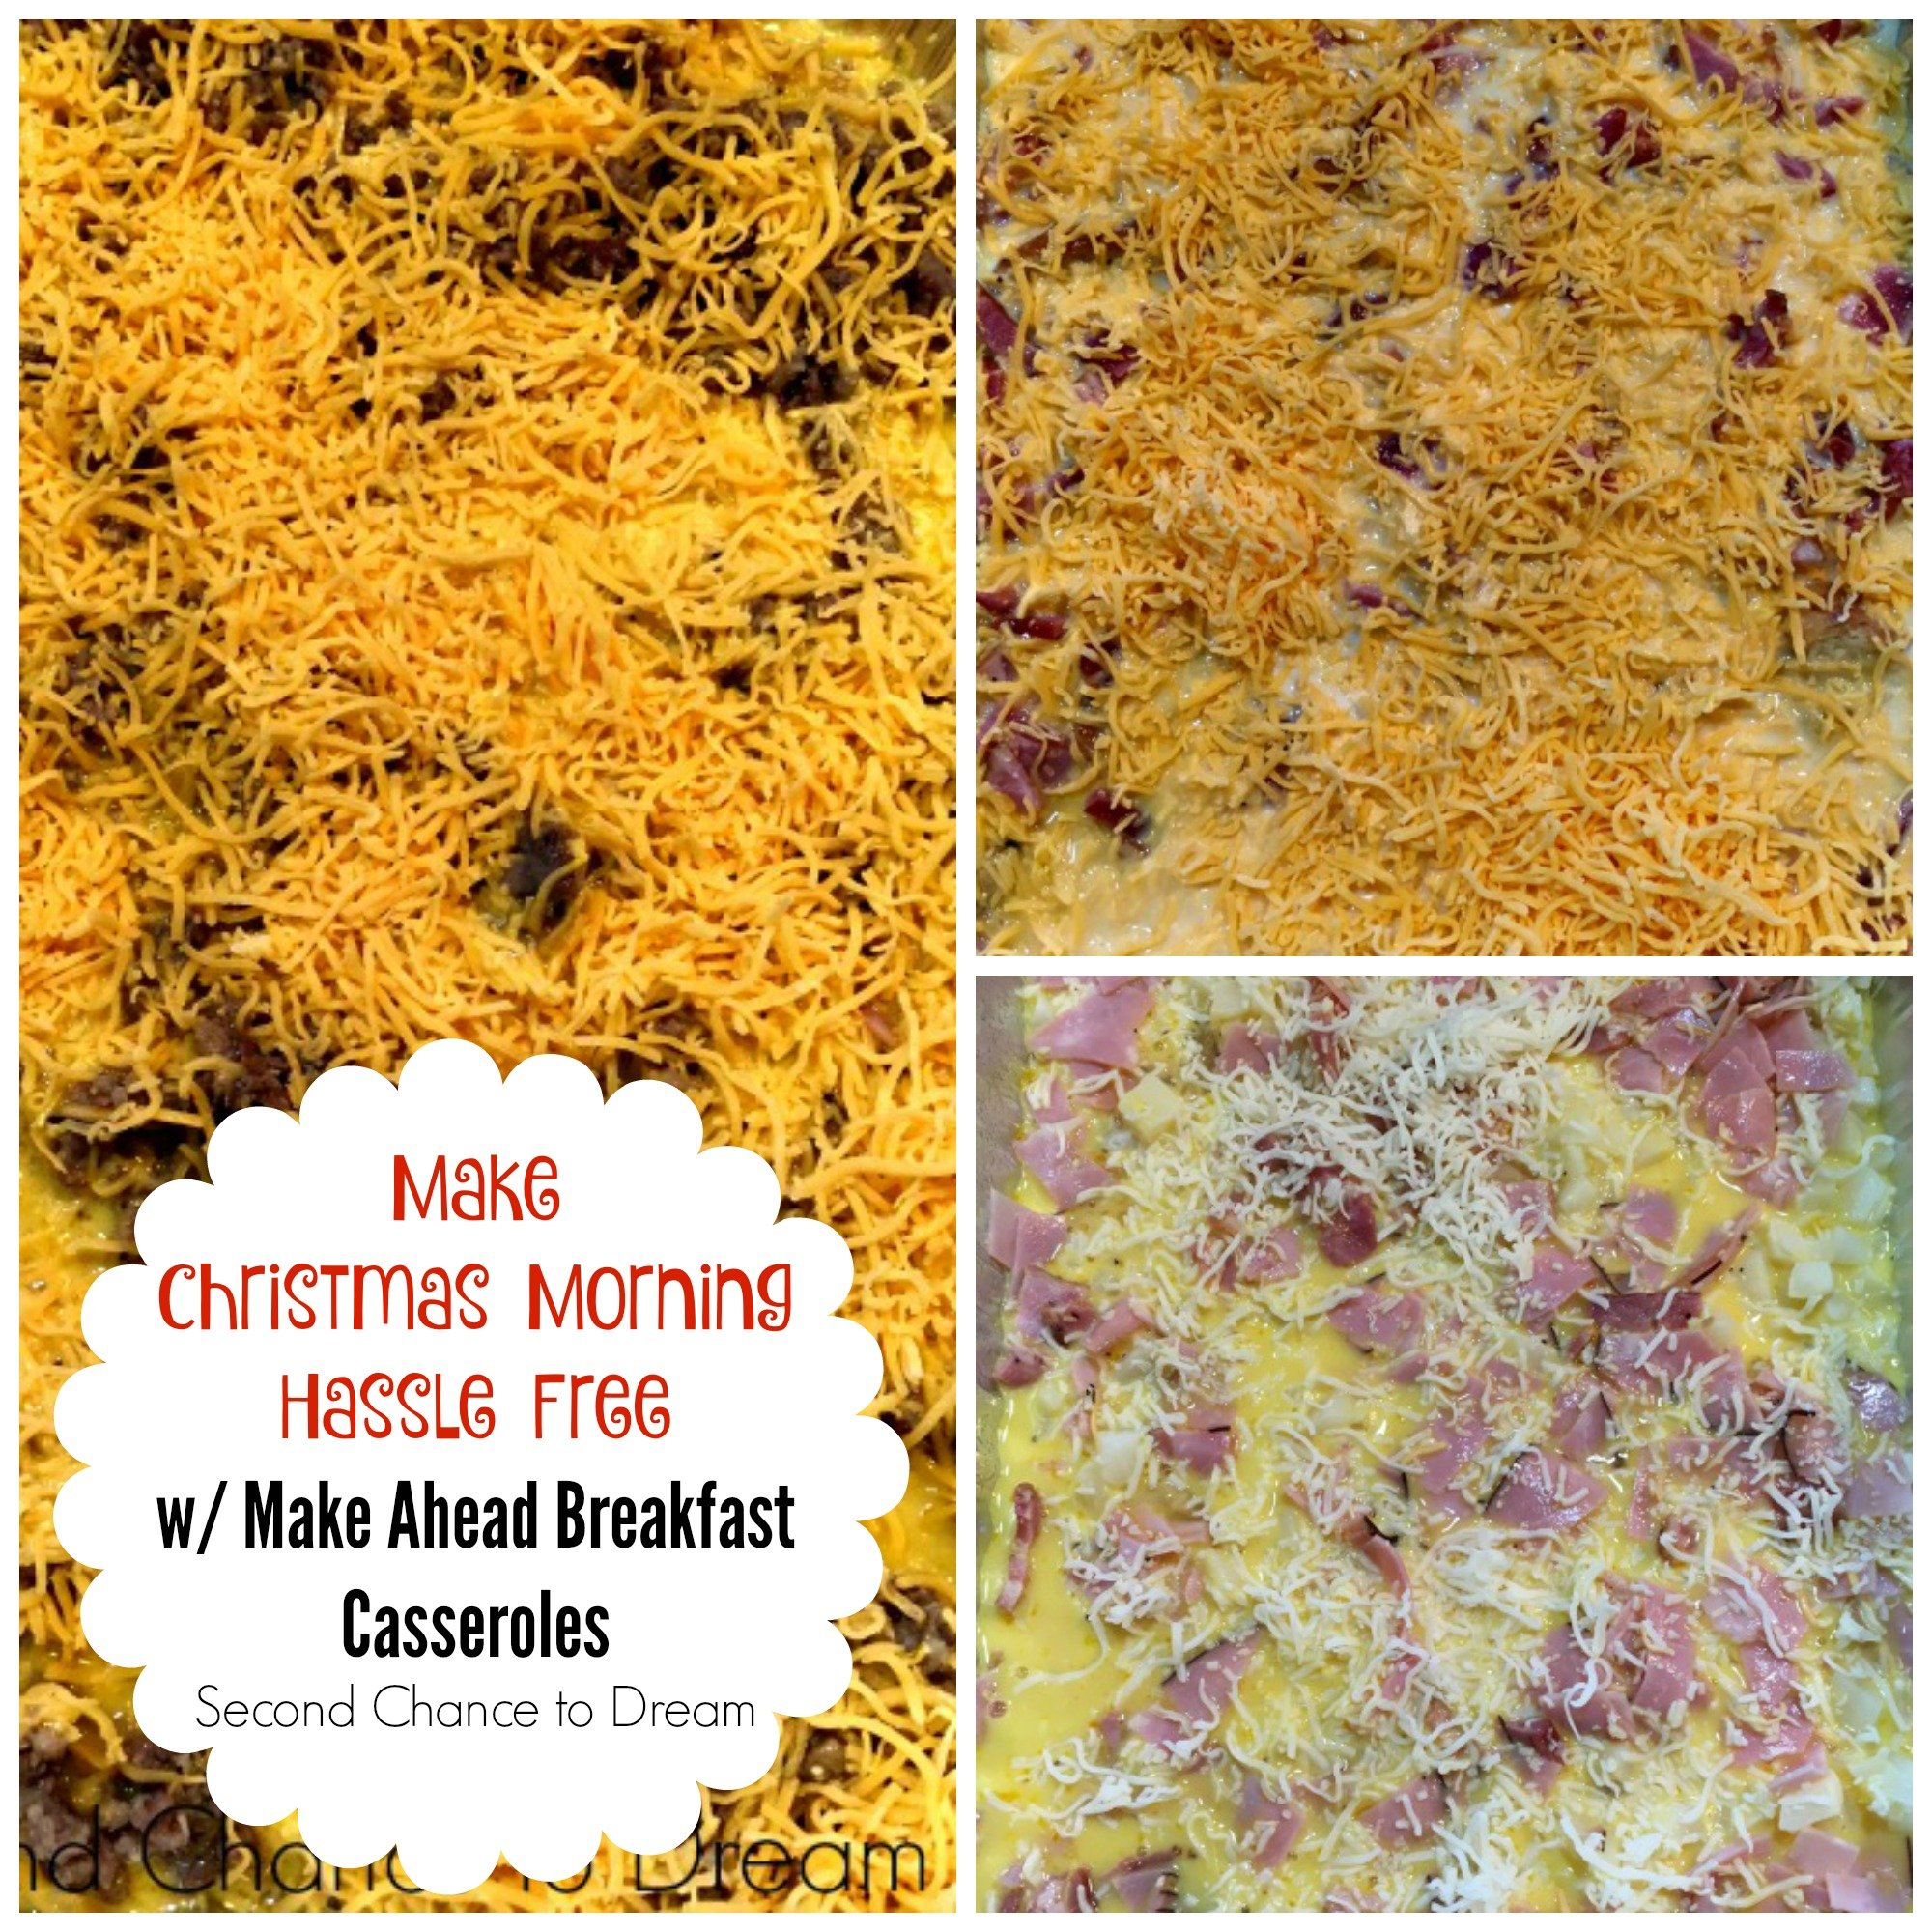 Second Chance to Dream: Make Christmas Morning Hassle Free with Make Ahead Breakfast Casseroles